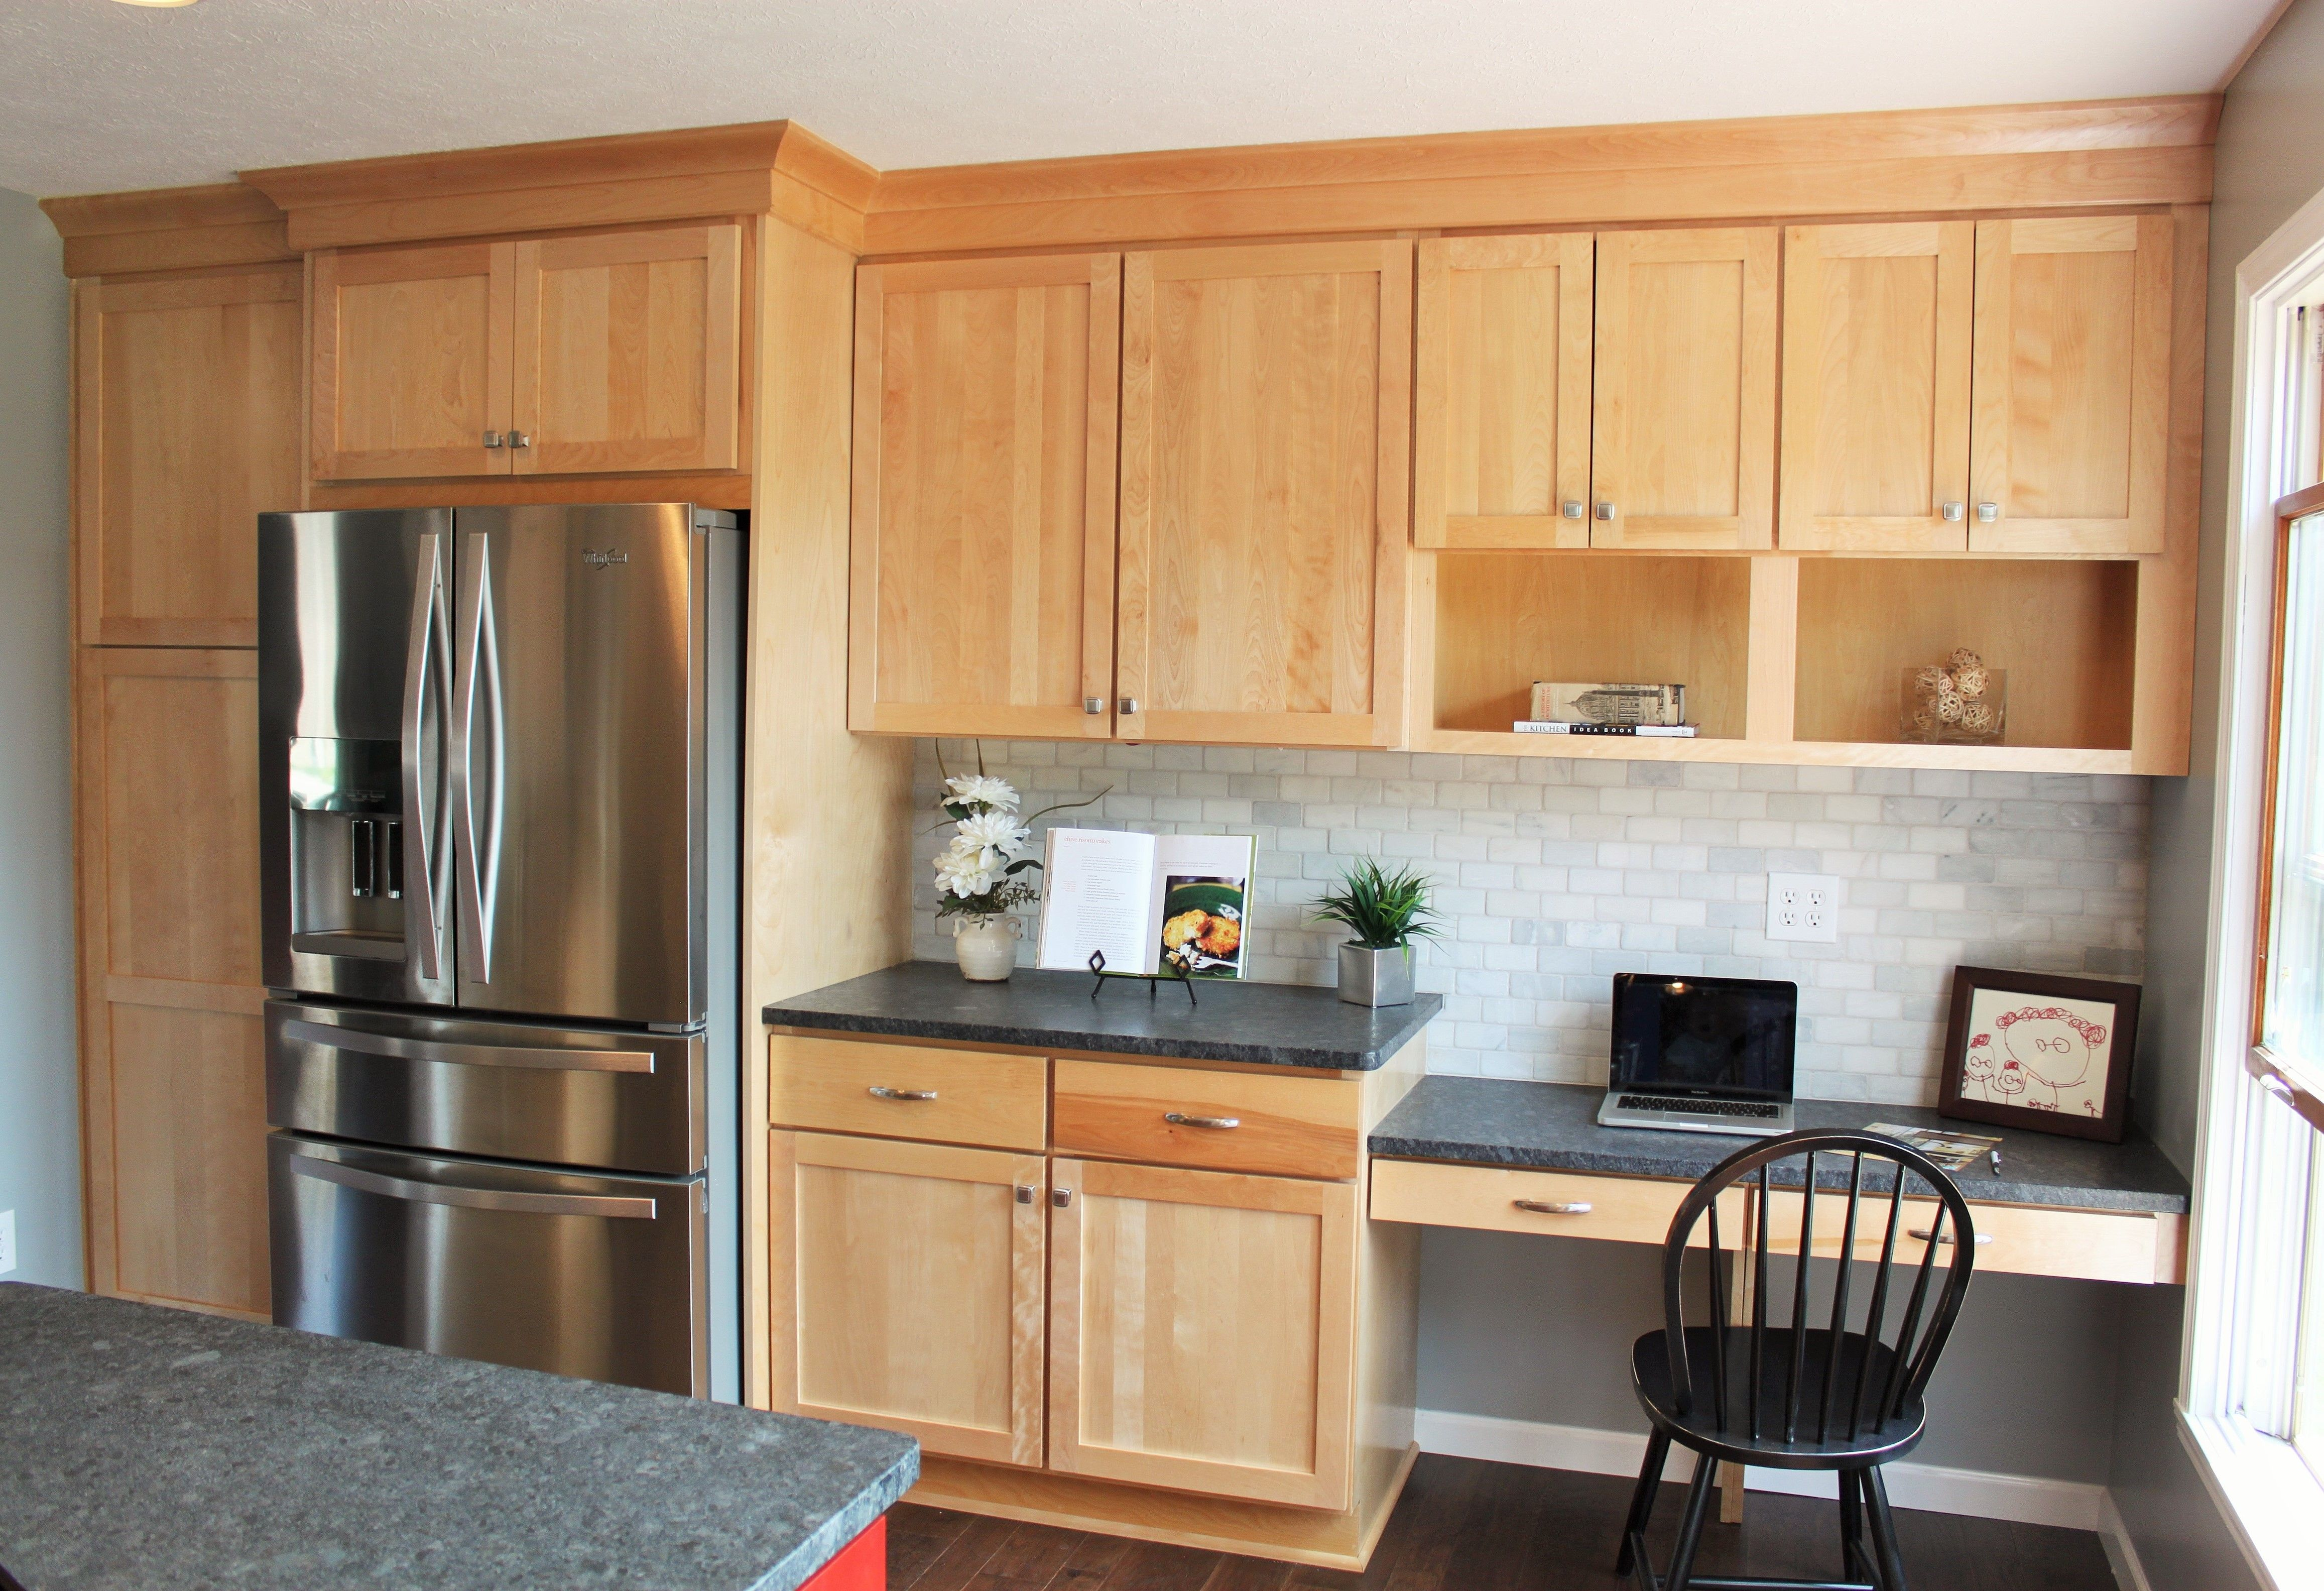 Kitchen desk area shows a shaker door in natural birch cabinets by bertch marketplace